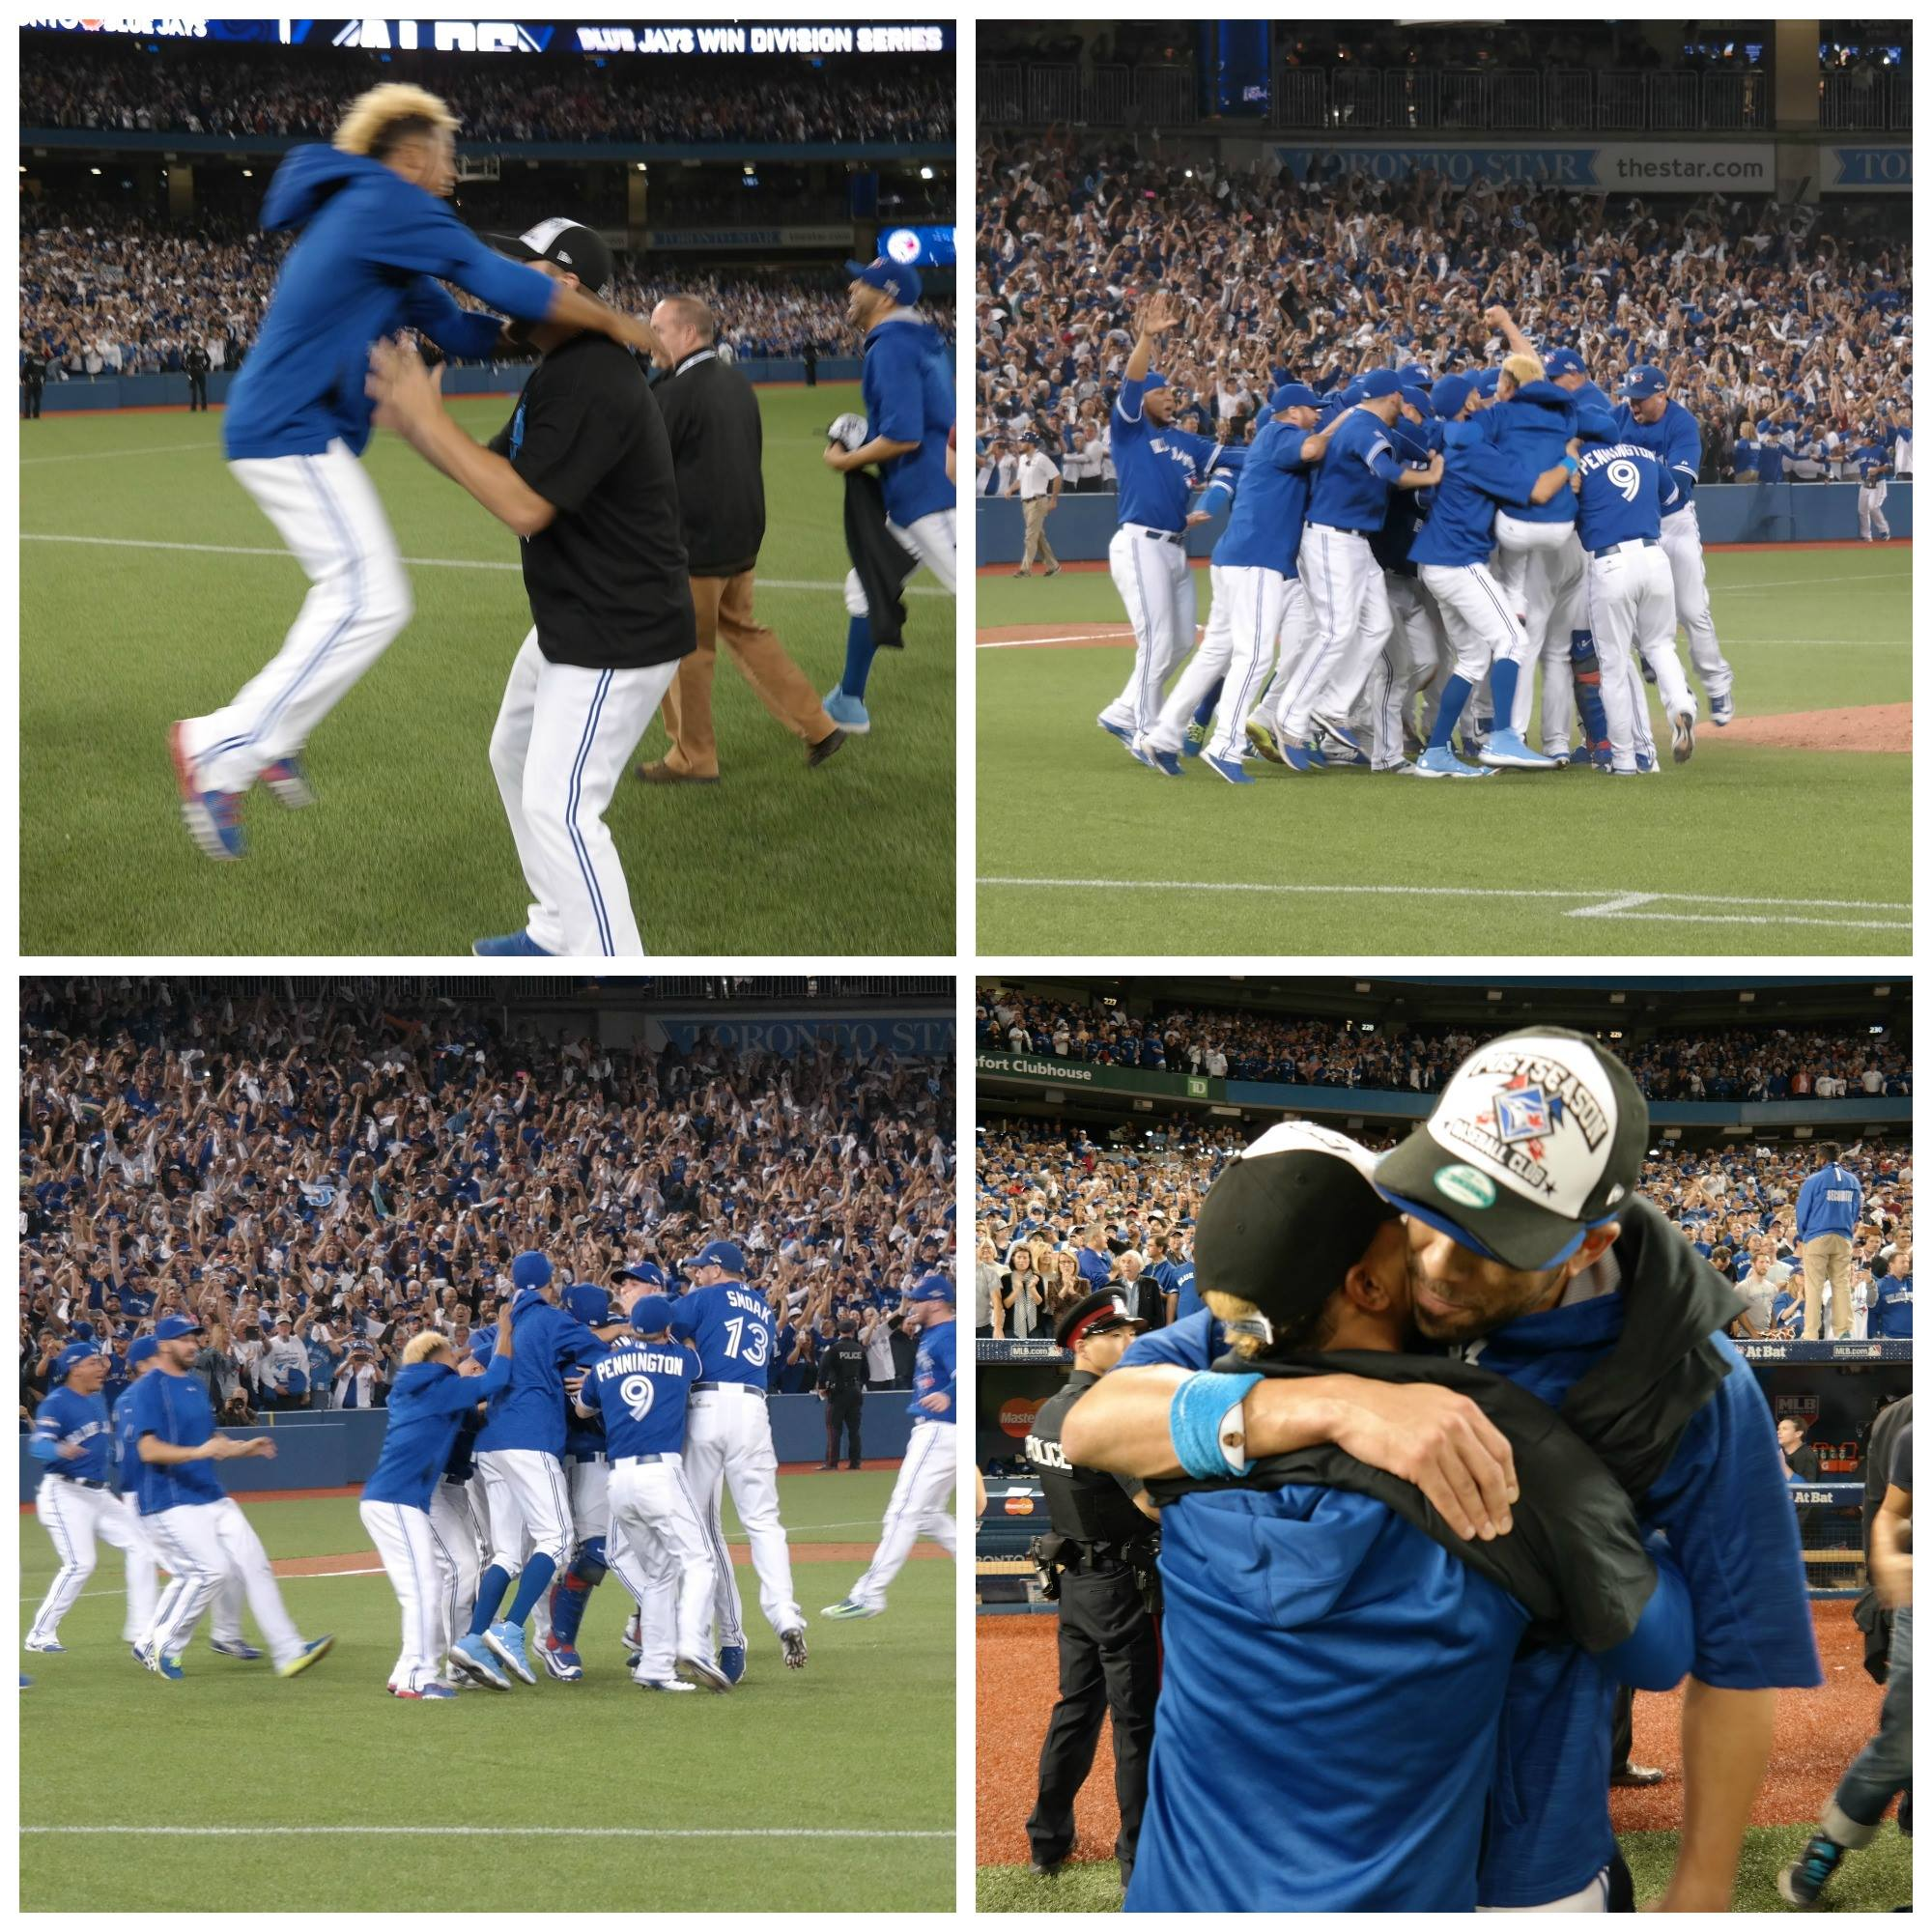 Image: Blue Jays / Facebook